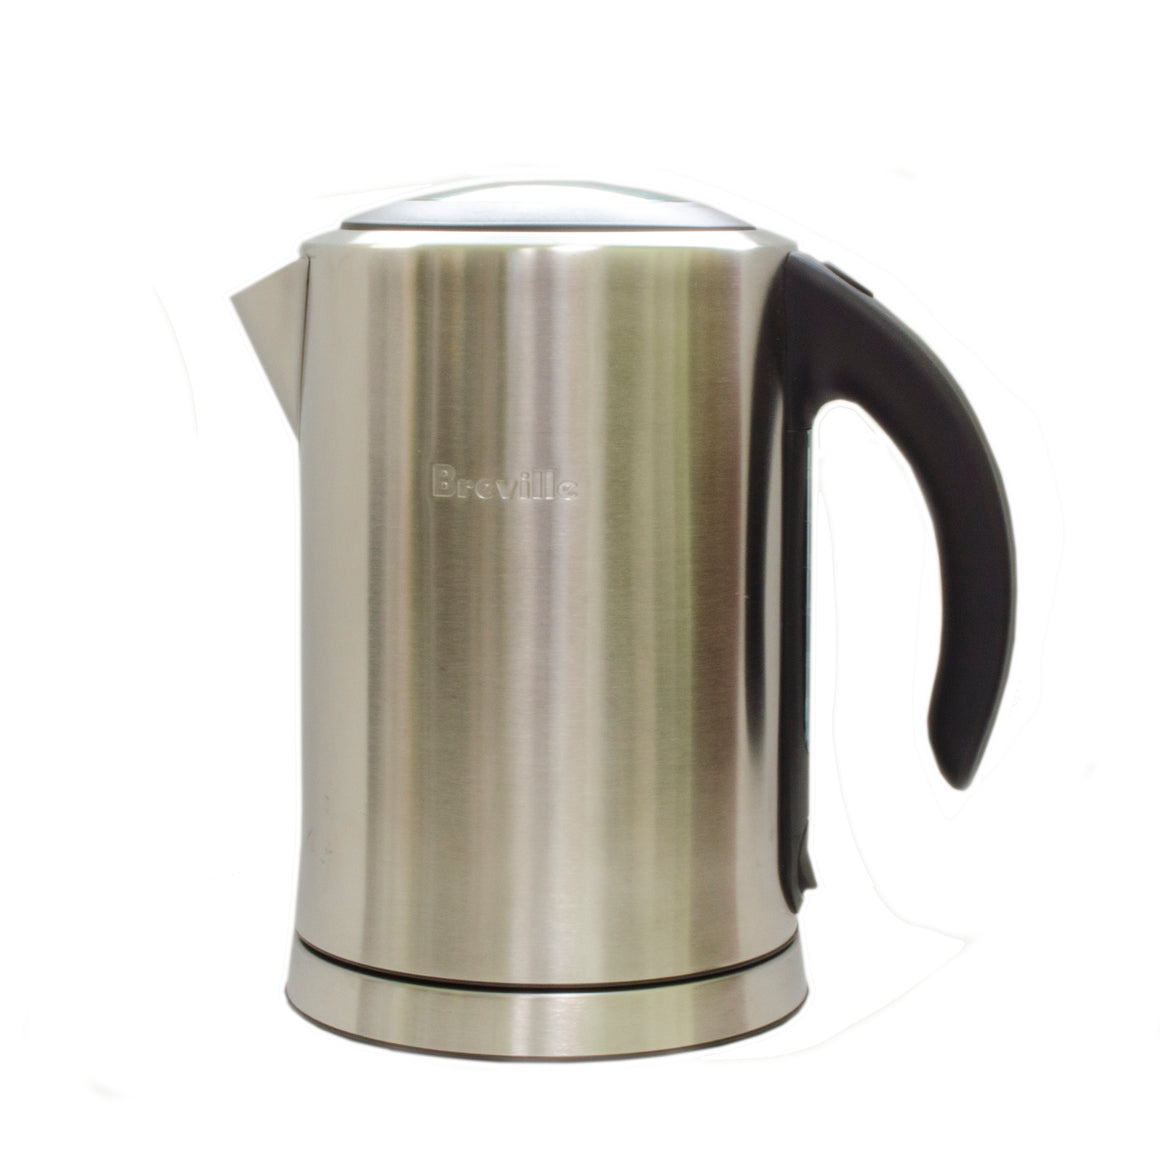 Breville Soft Top Kettle - Todd & Holland Tea Merchants